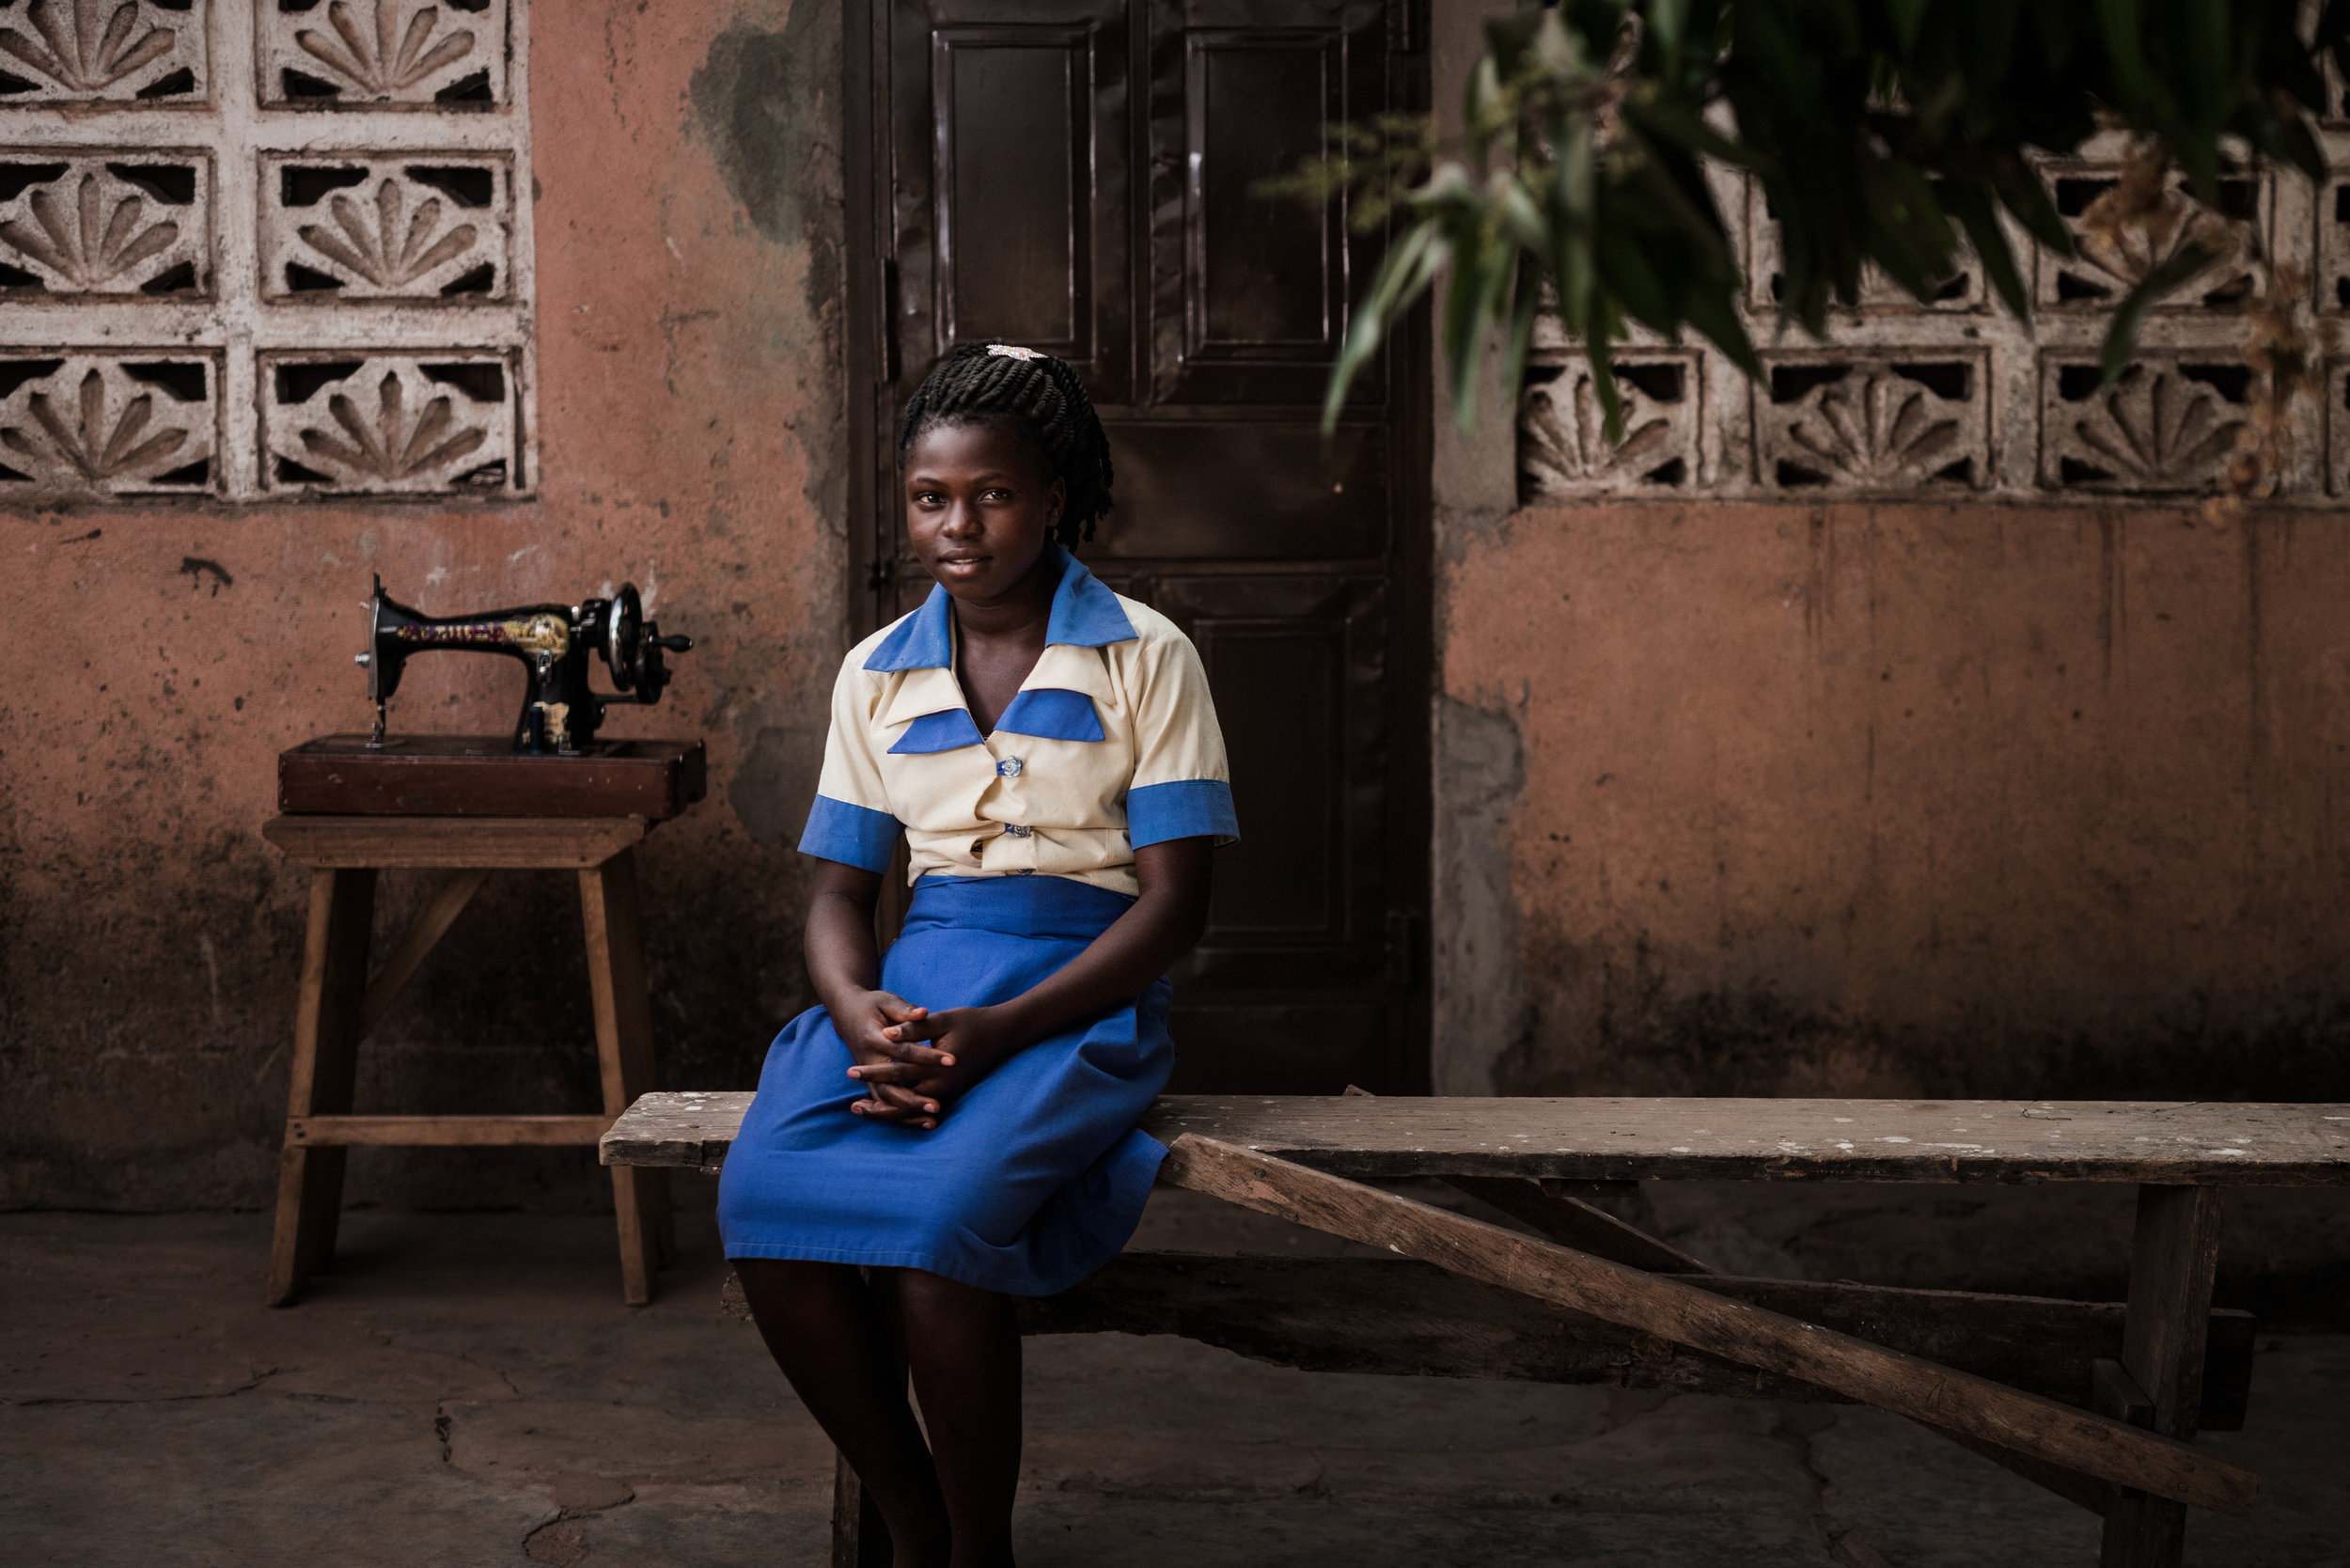 TaraShupe_HumanitarianPhotographer_Woman_Photographer_National_Geographic_Ghana_Women_065.jpg